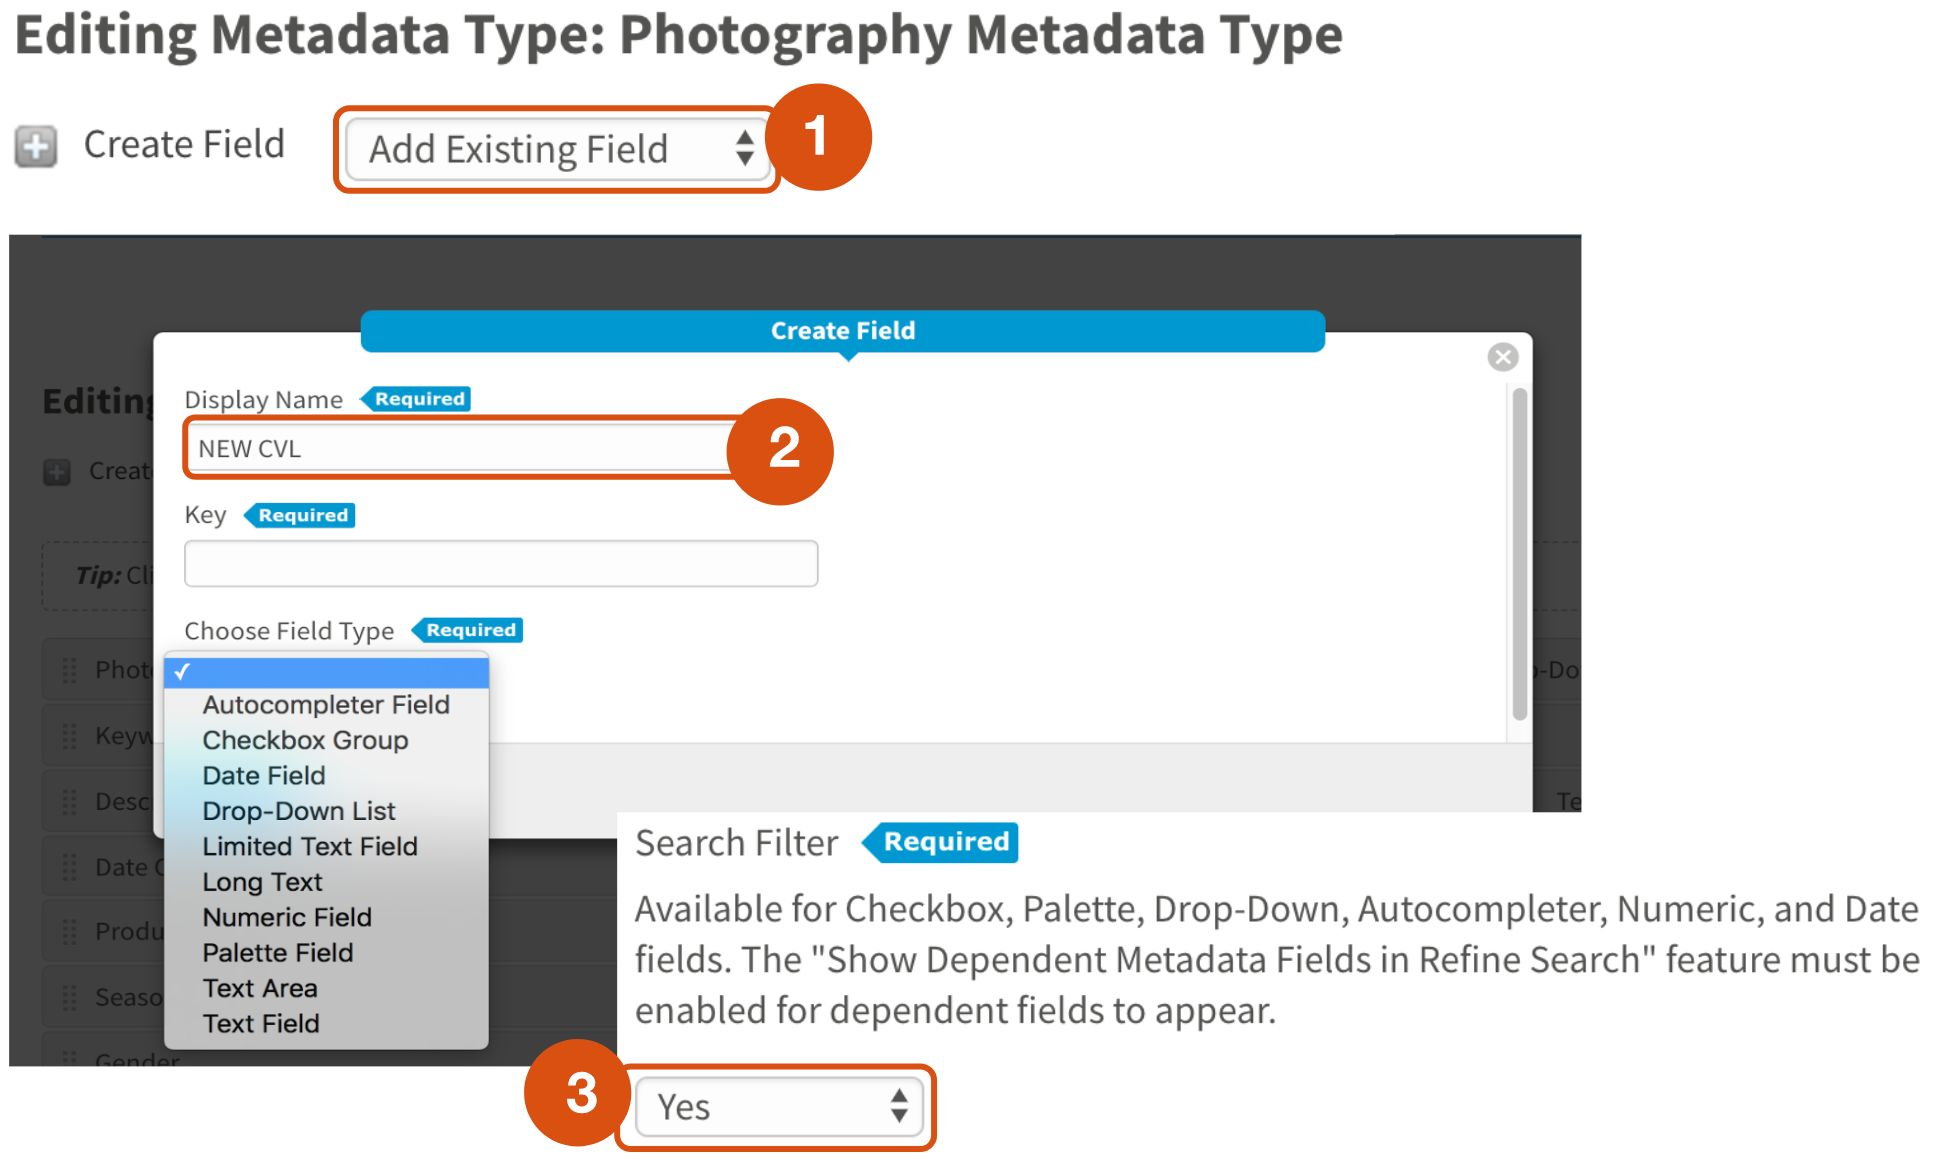 create a new controlled vocabulary metadata field